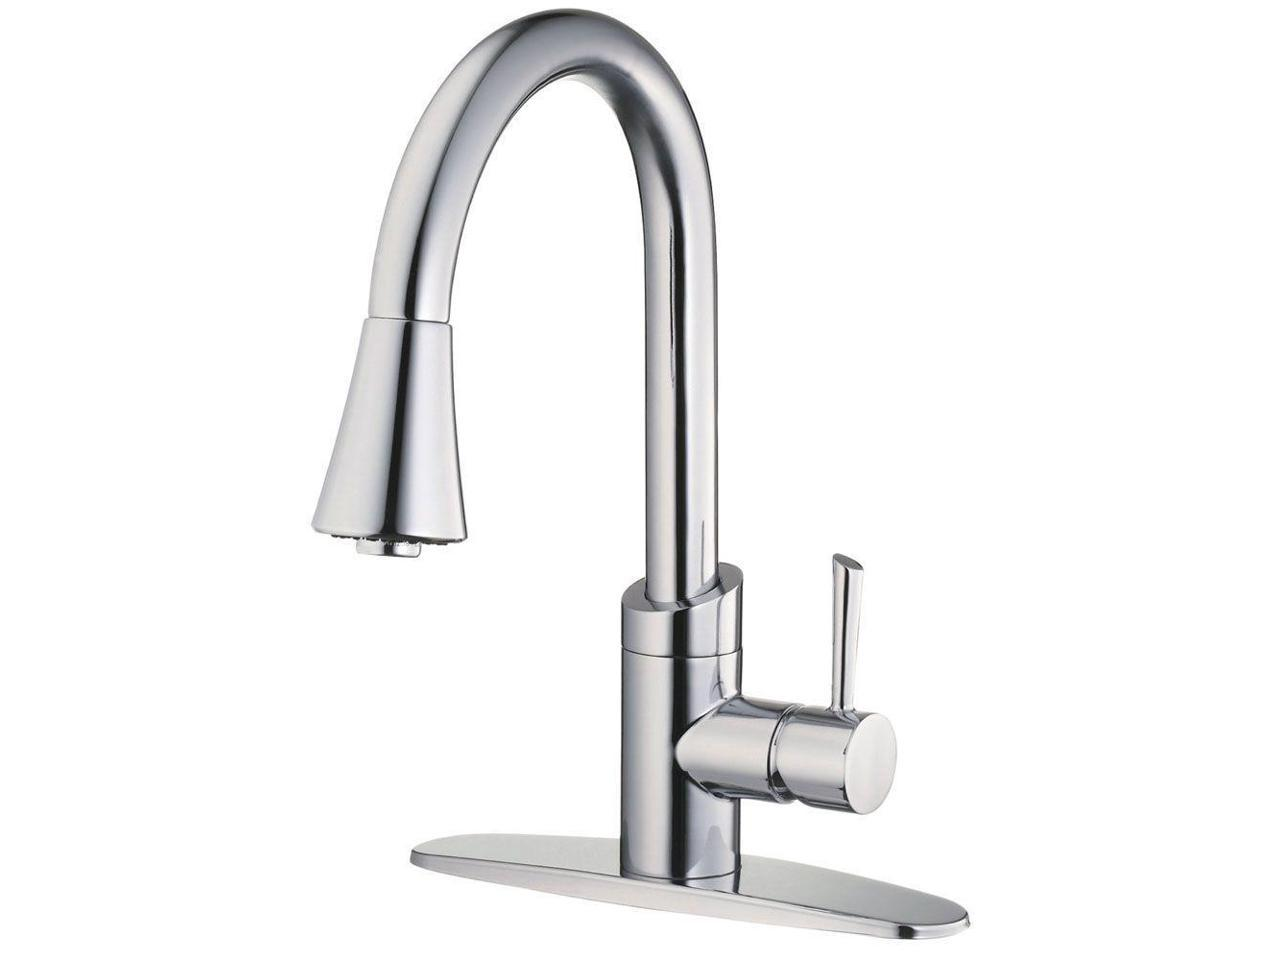 Belle Foret Sc406cp Bf406cp Single Handle Kitchen Faucet With Pull Down In Chrome Newegg Com